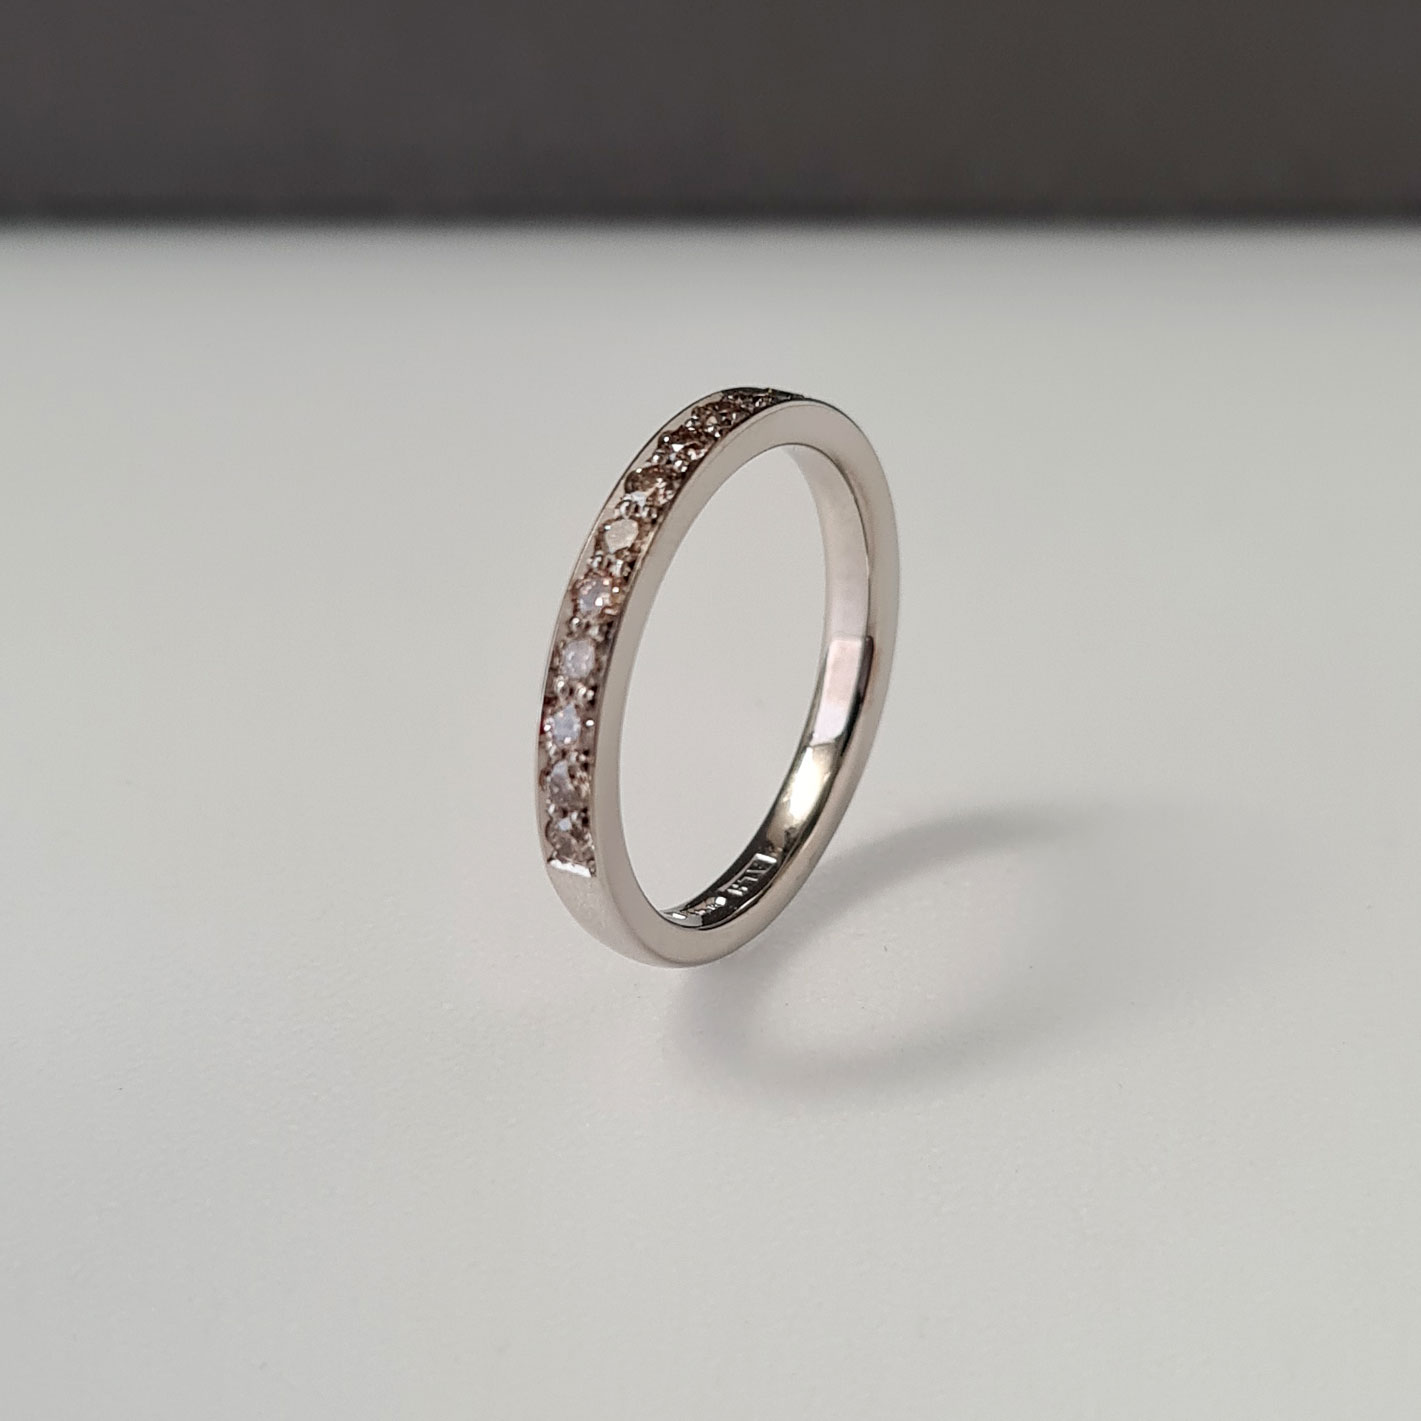 Champagne diamond eternity ring in white Fairtrade gold standing upright on a black and white background.